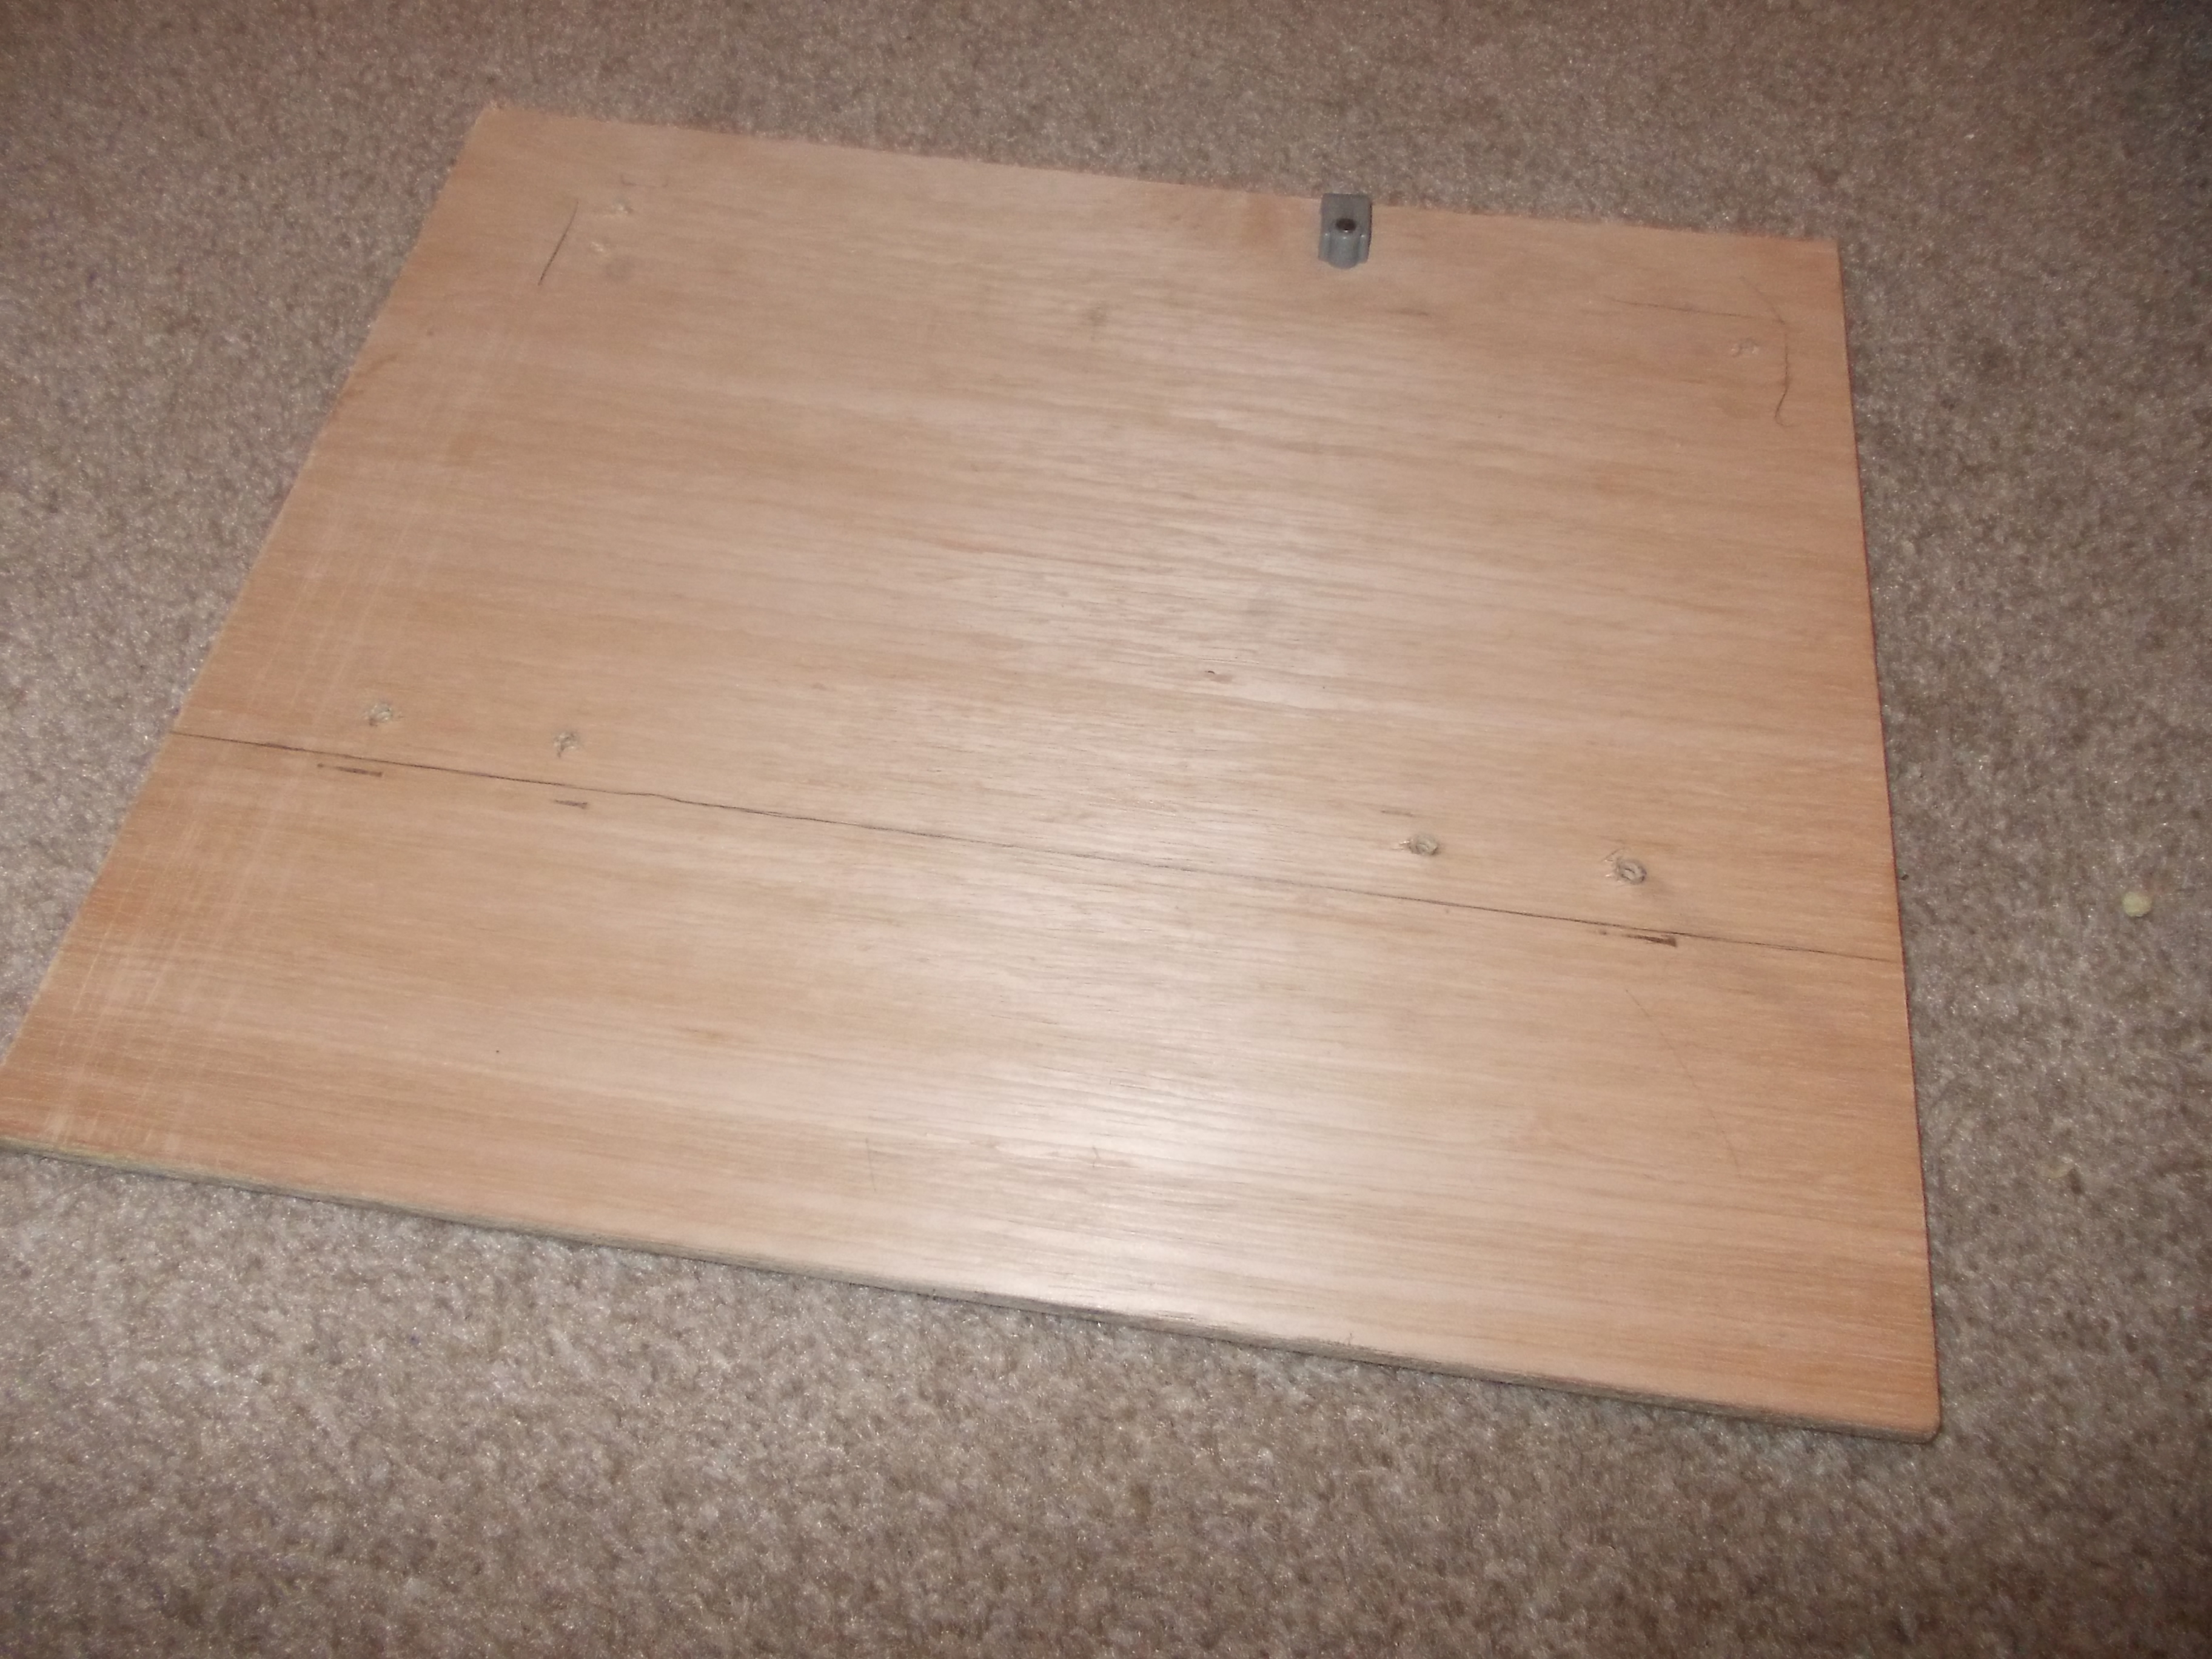 Picture of Cutting Base for Pedals